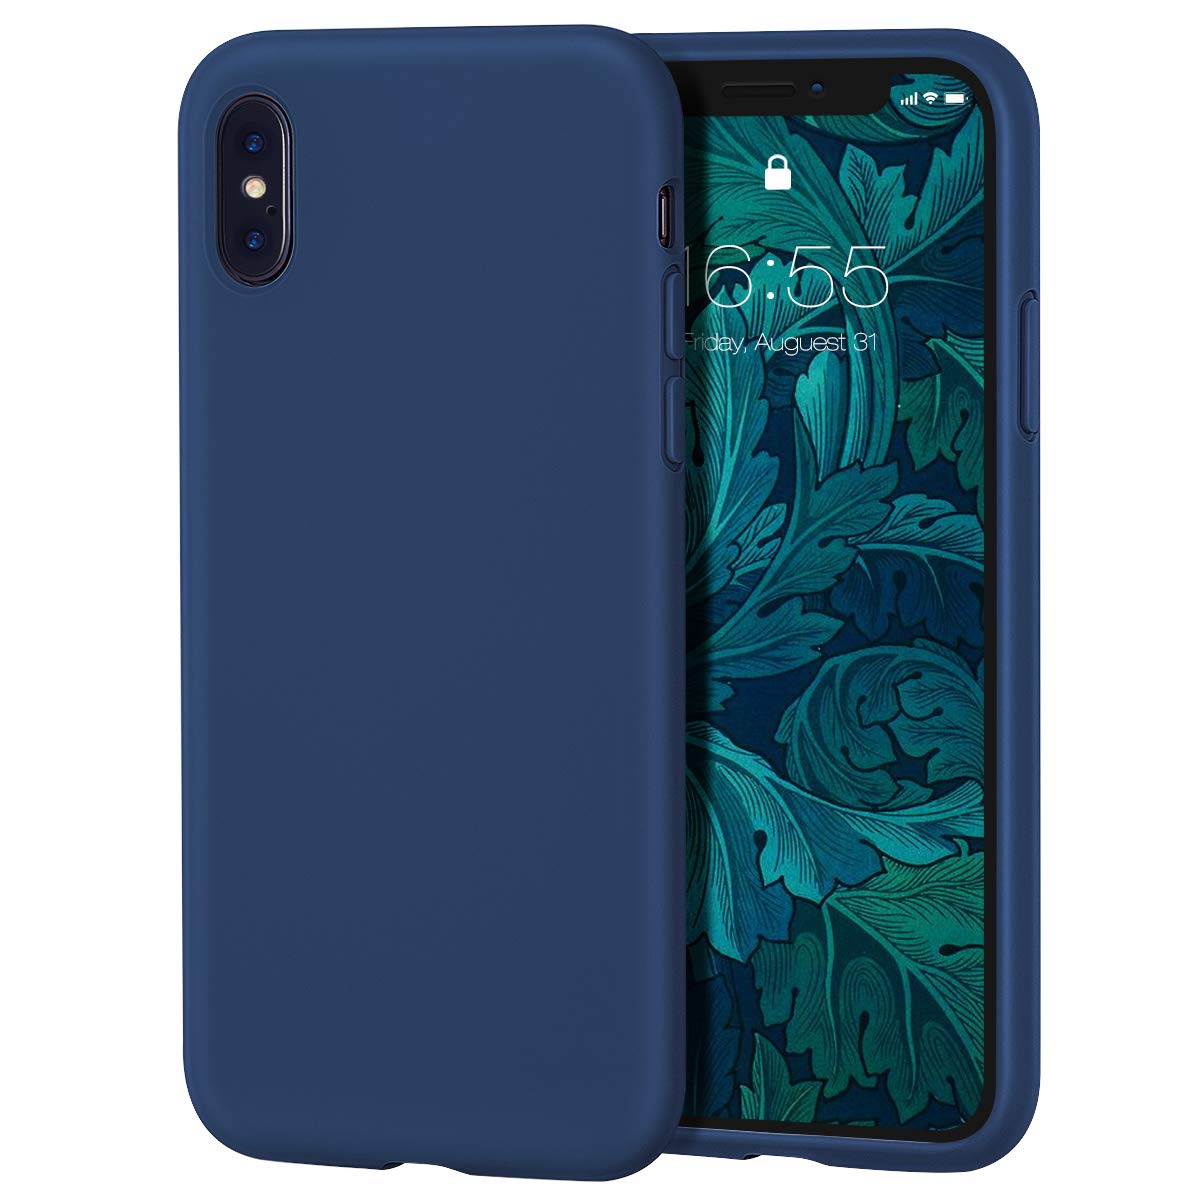 MILPROX iPhone X/Xs Silicone Series Liquid Silicone Gel Rubber Slim Fit Case with Soft Microfiber Cloth Lining Cushion for iPhone X/iPhone Xs- Blue Horizon